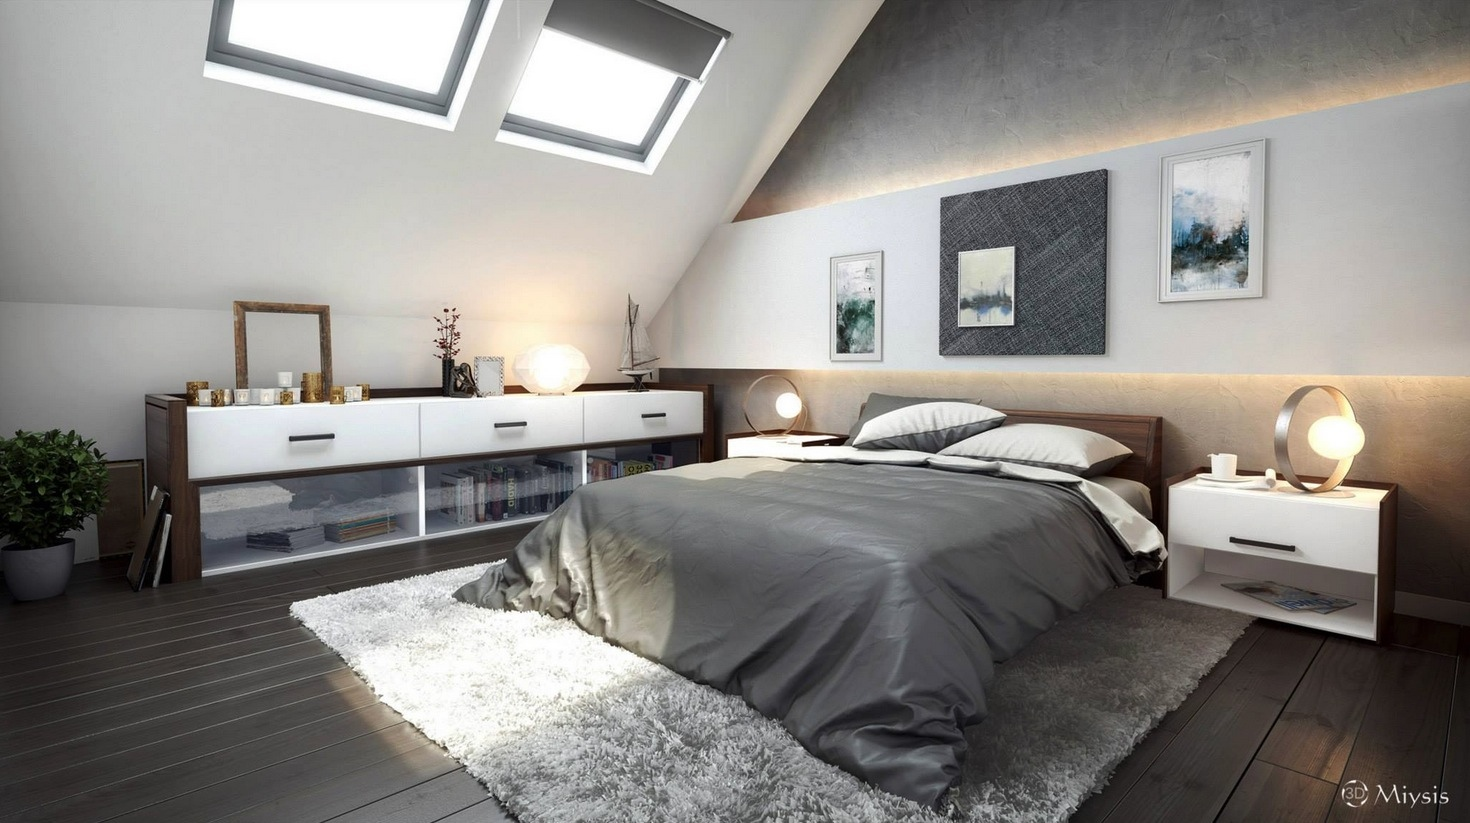 Attic bedroom ideas interior design ideas for Bedroom ideas uk